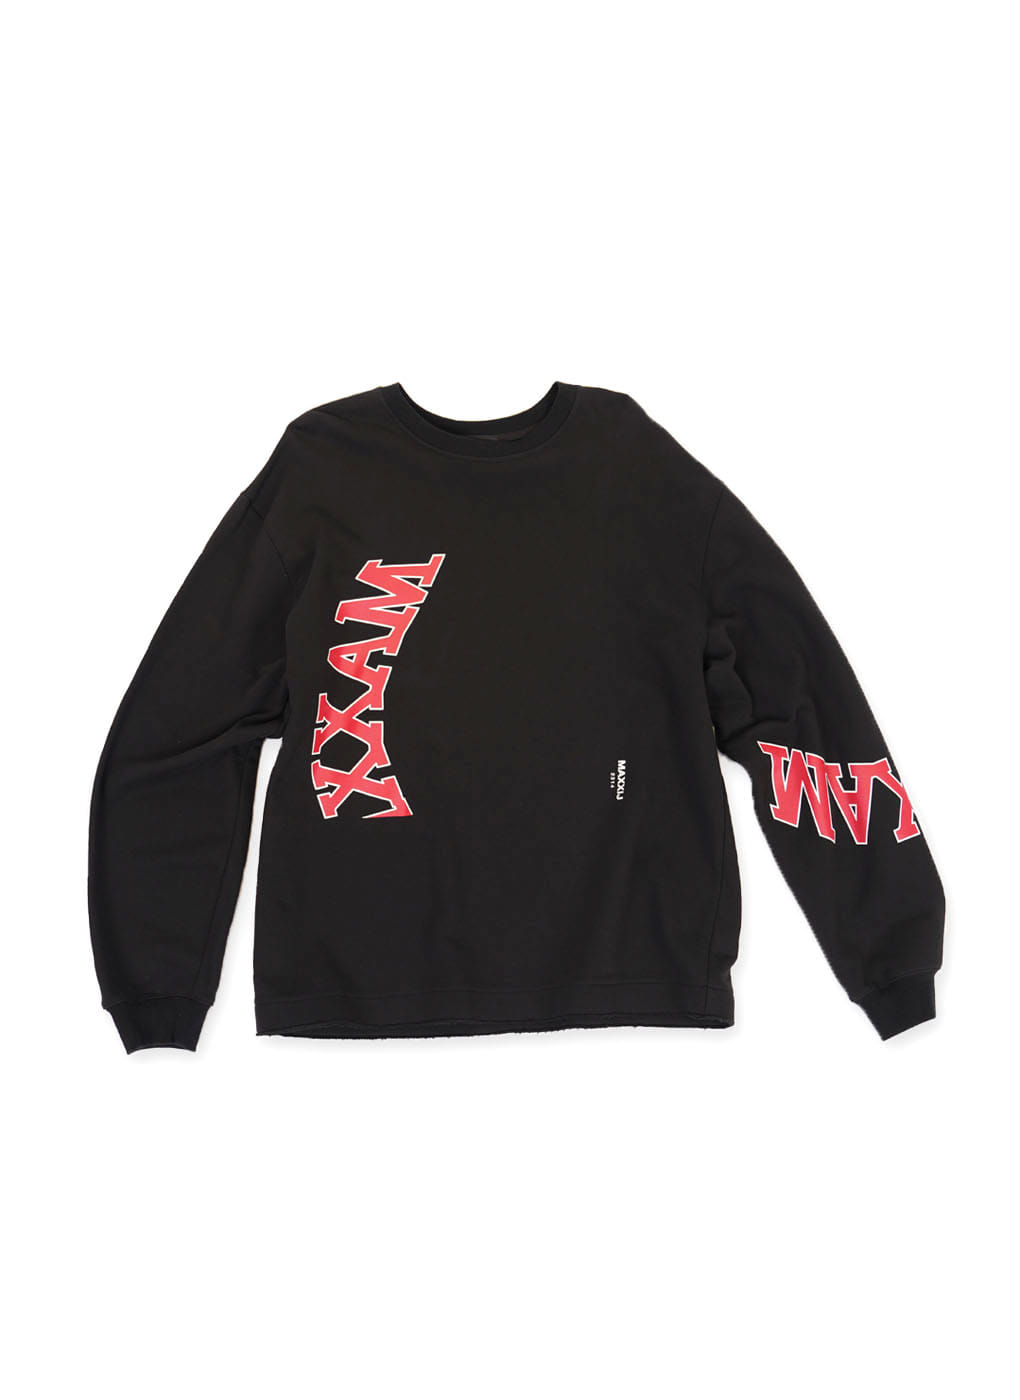 Black Collage Printed Sweatshirt